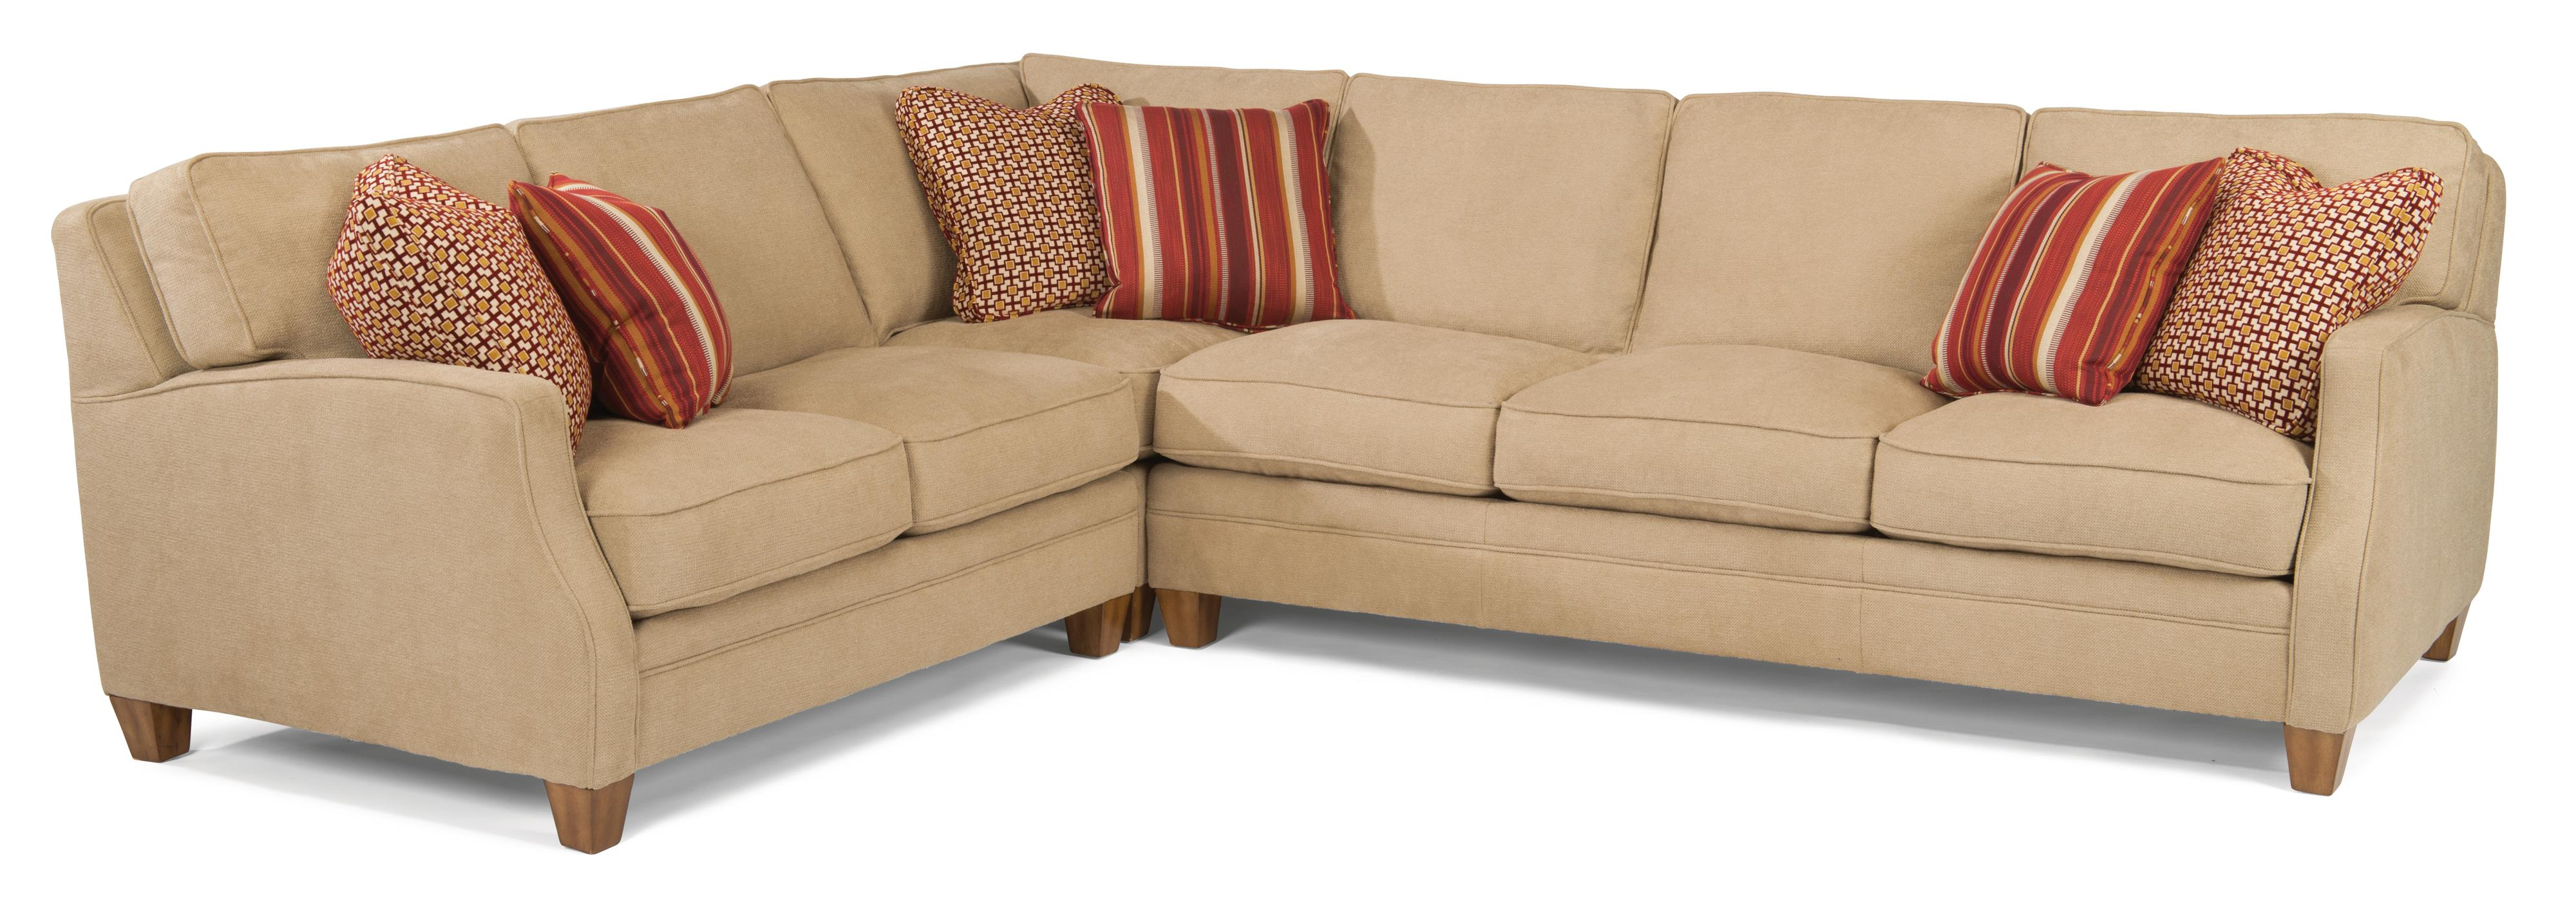 Flexsteel Lenox 3 Pc Sectional Sofa - Item Number: 7564-27+7654-231+7564-38-922-80